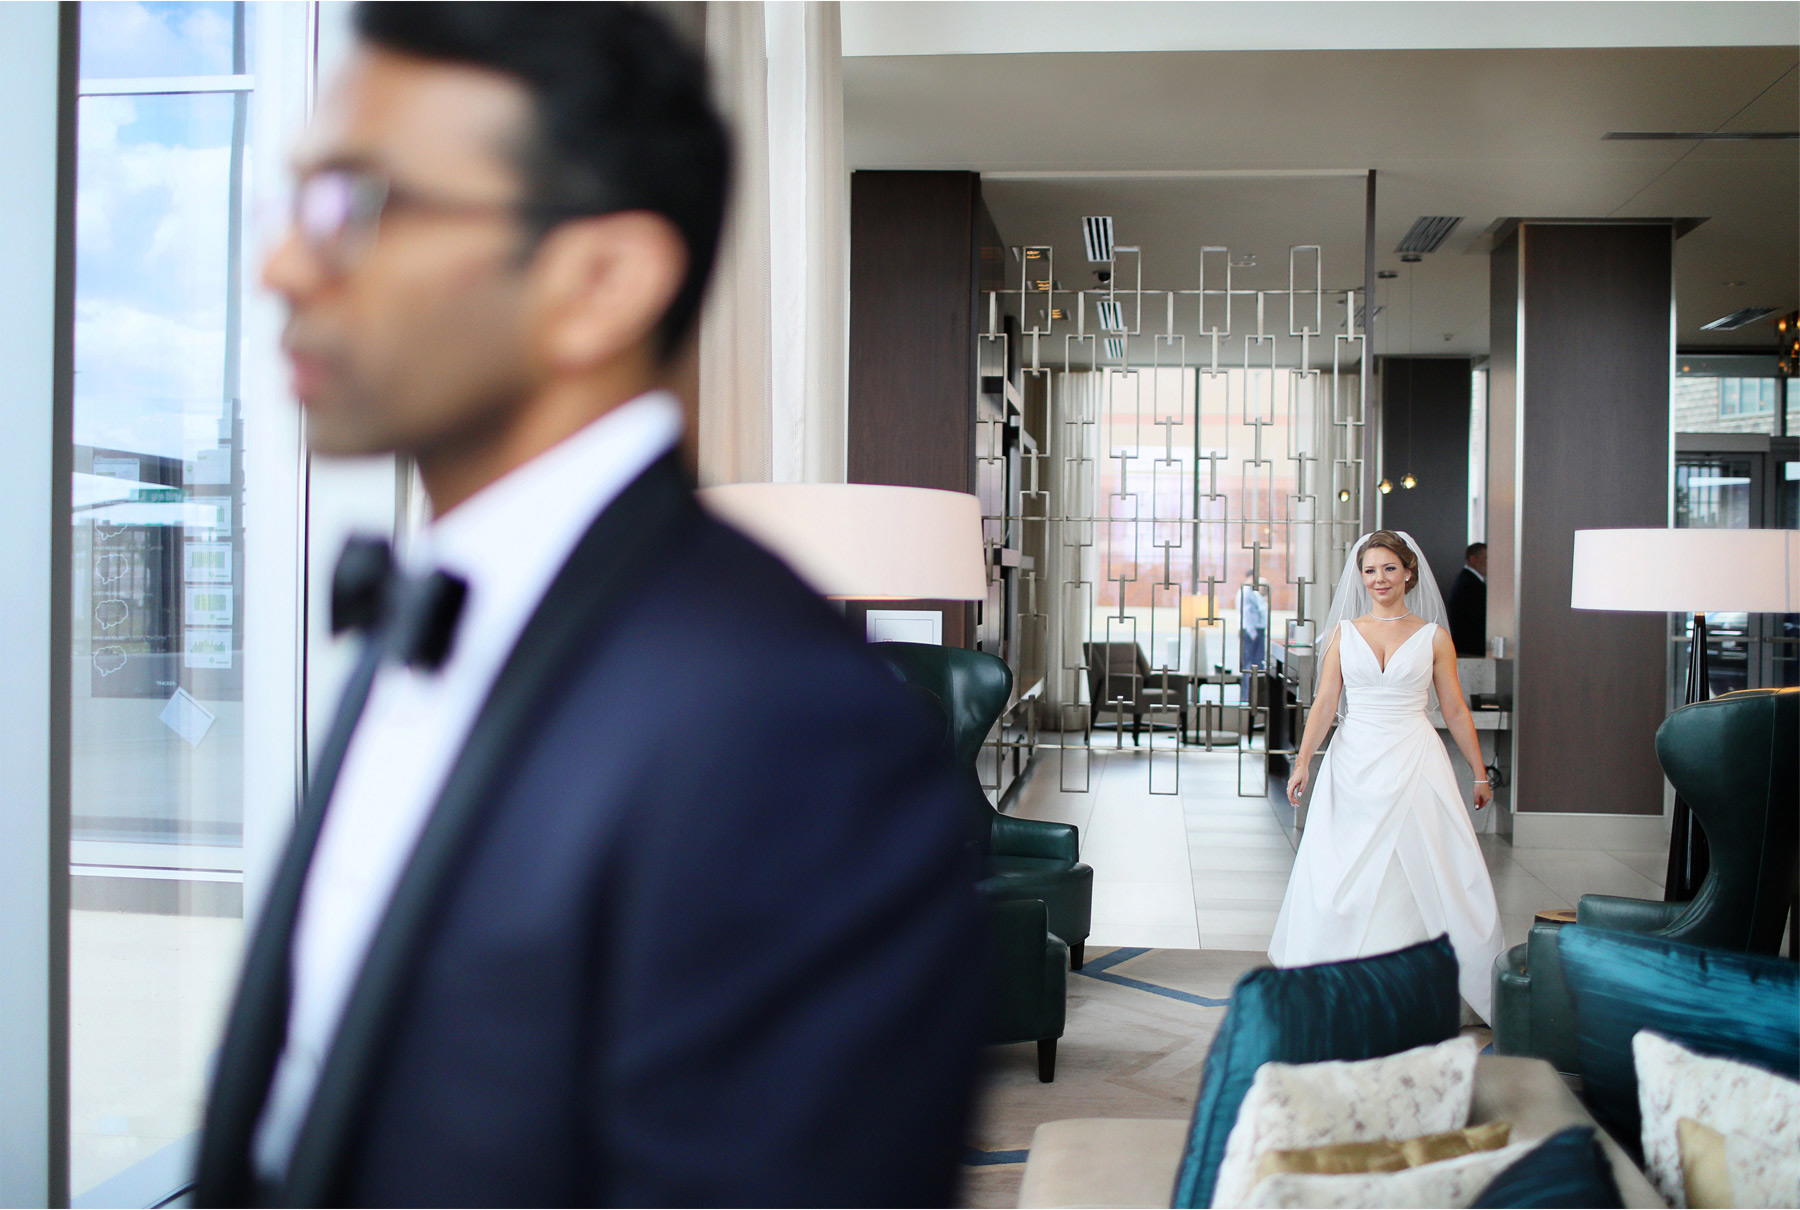 05-Bloomington-Minneapolis-Minnesota-Wedding-Photographer-by-Andrew-Vick-Photography-JW-Marriott-Mall-of-America-MOA-Spring-First-Meeting-Look-Bride-Groom-Hotel-Rachel-and-Venu.jpg